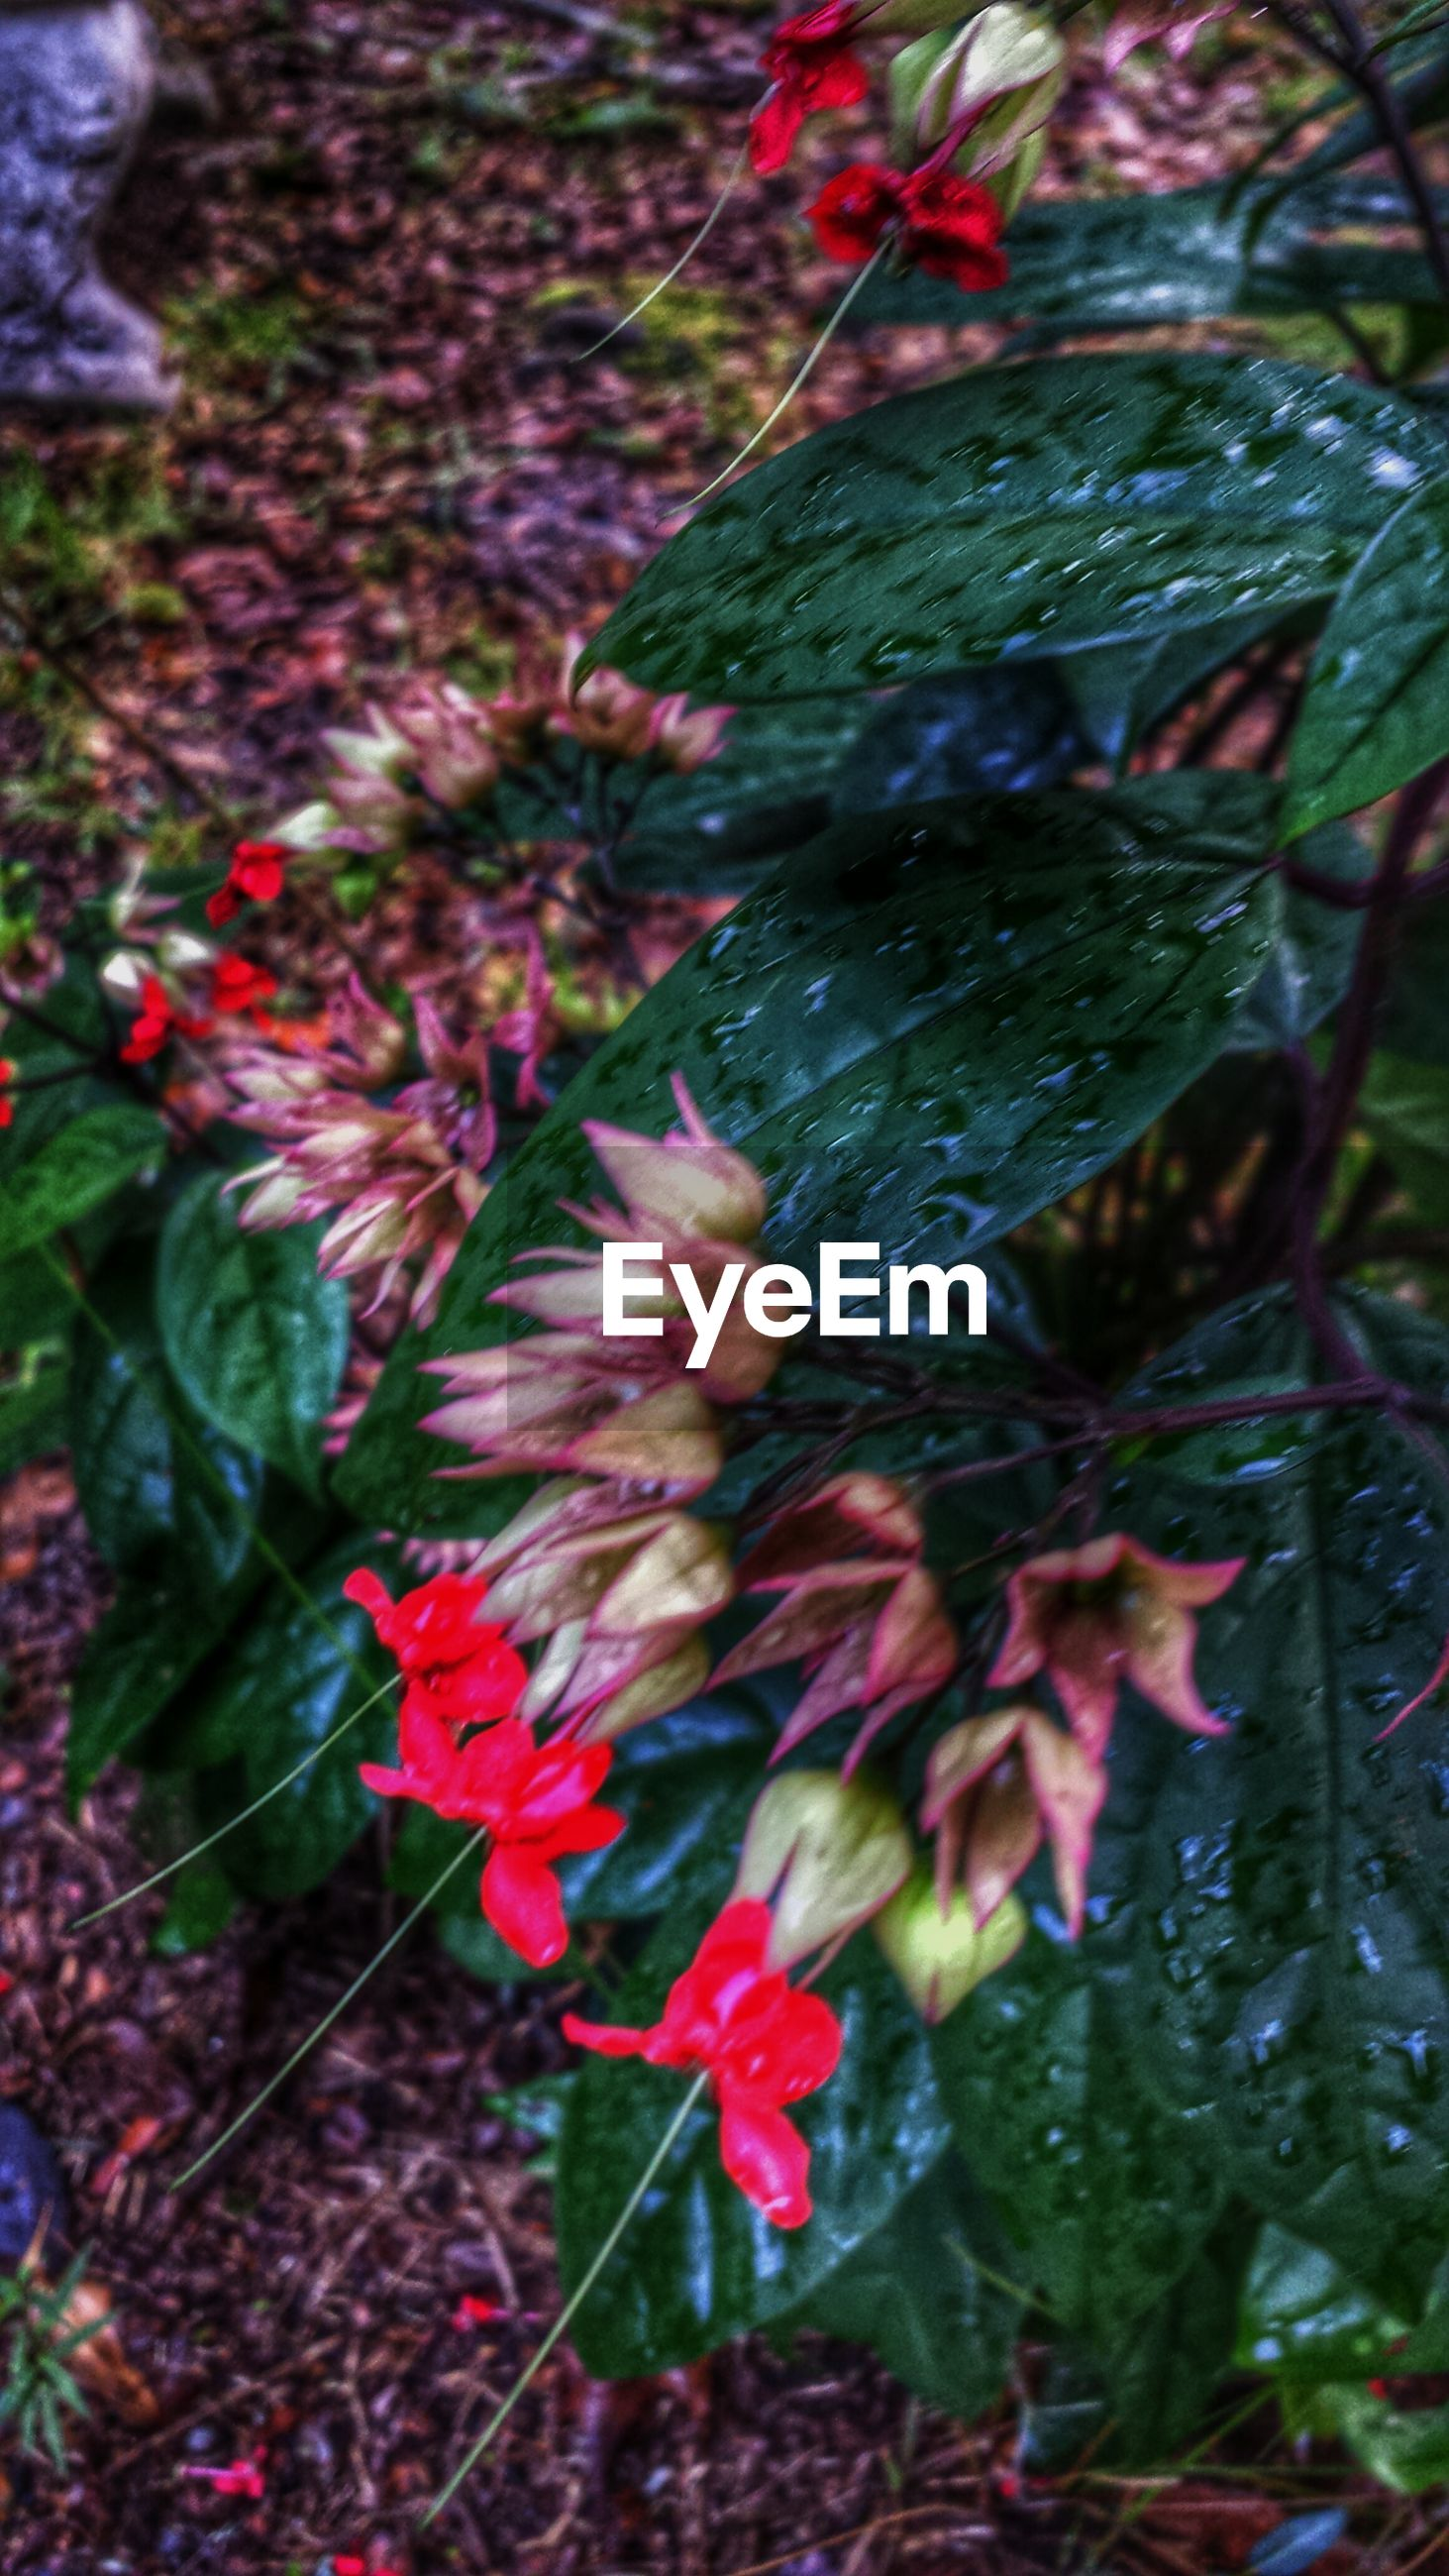 flower, growth, leaf, freshness, beauty in nature, nature, plant, fragility, red, pink color, petal, close-up, high angle view, season, day, outdoors, focus on foreground, blooming, tranquility, water